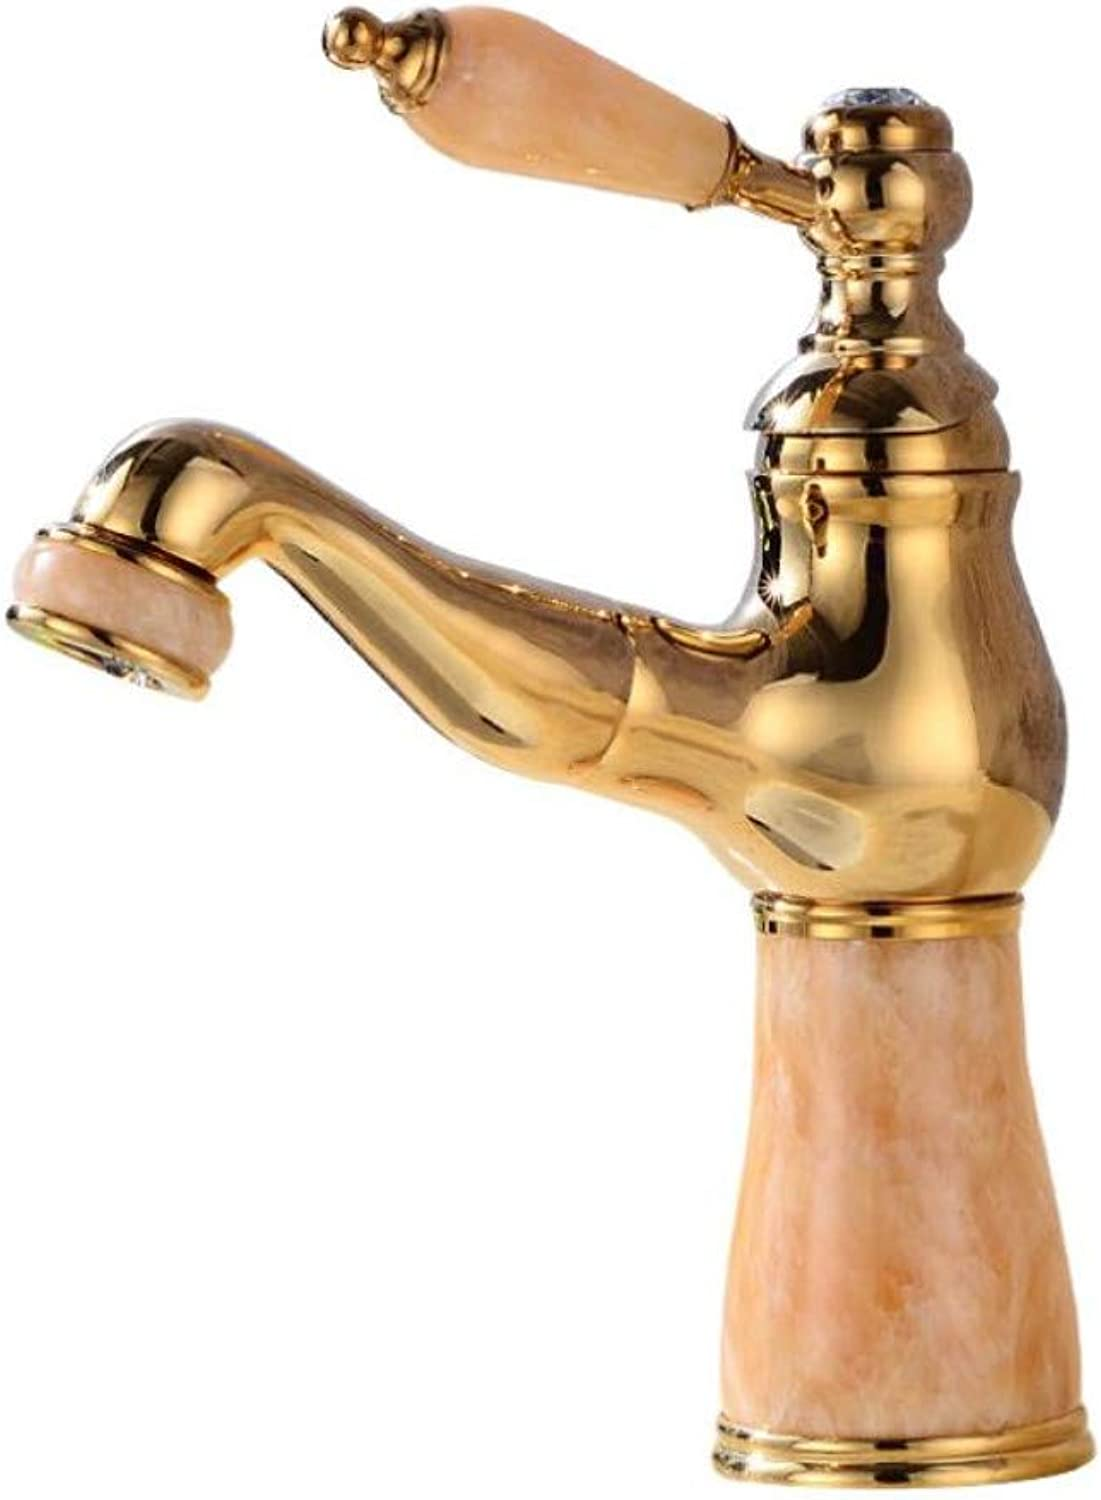 gold Sink Bathroom Faucet Copper Handles Basin Water Tap Deck Mounted Pull Out Single Hole